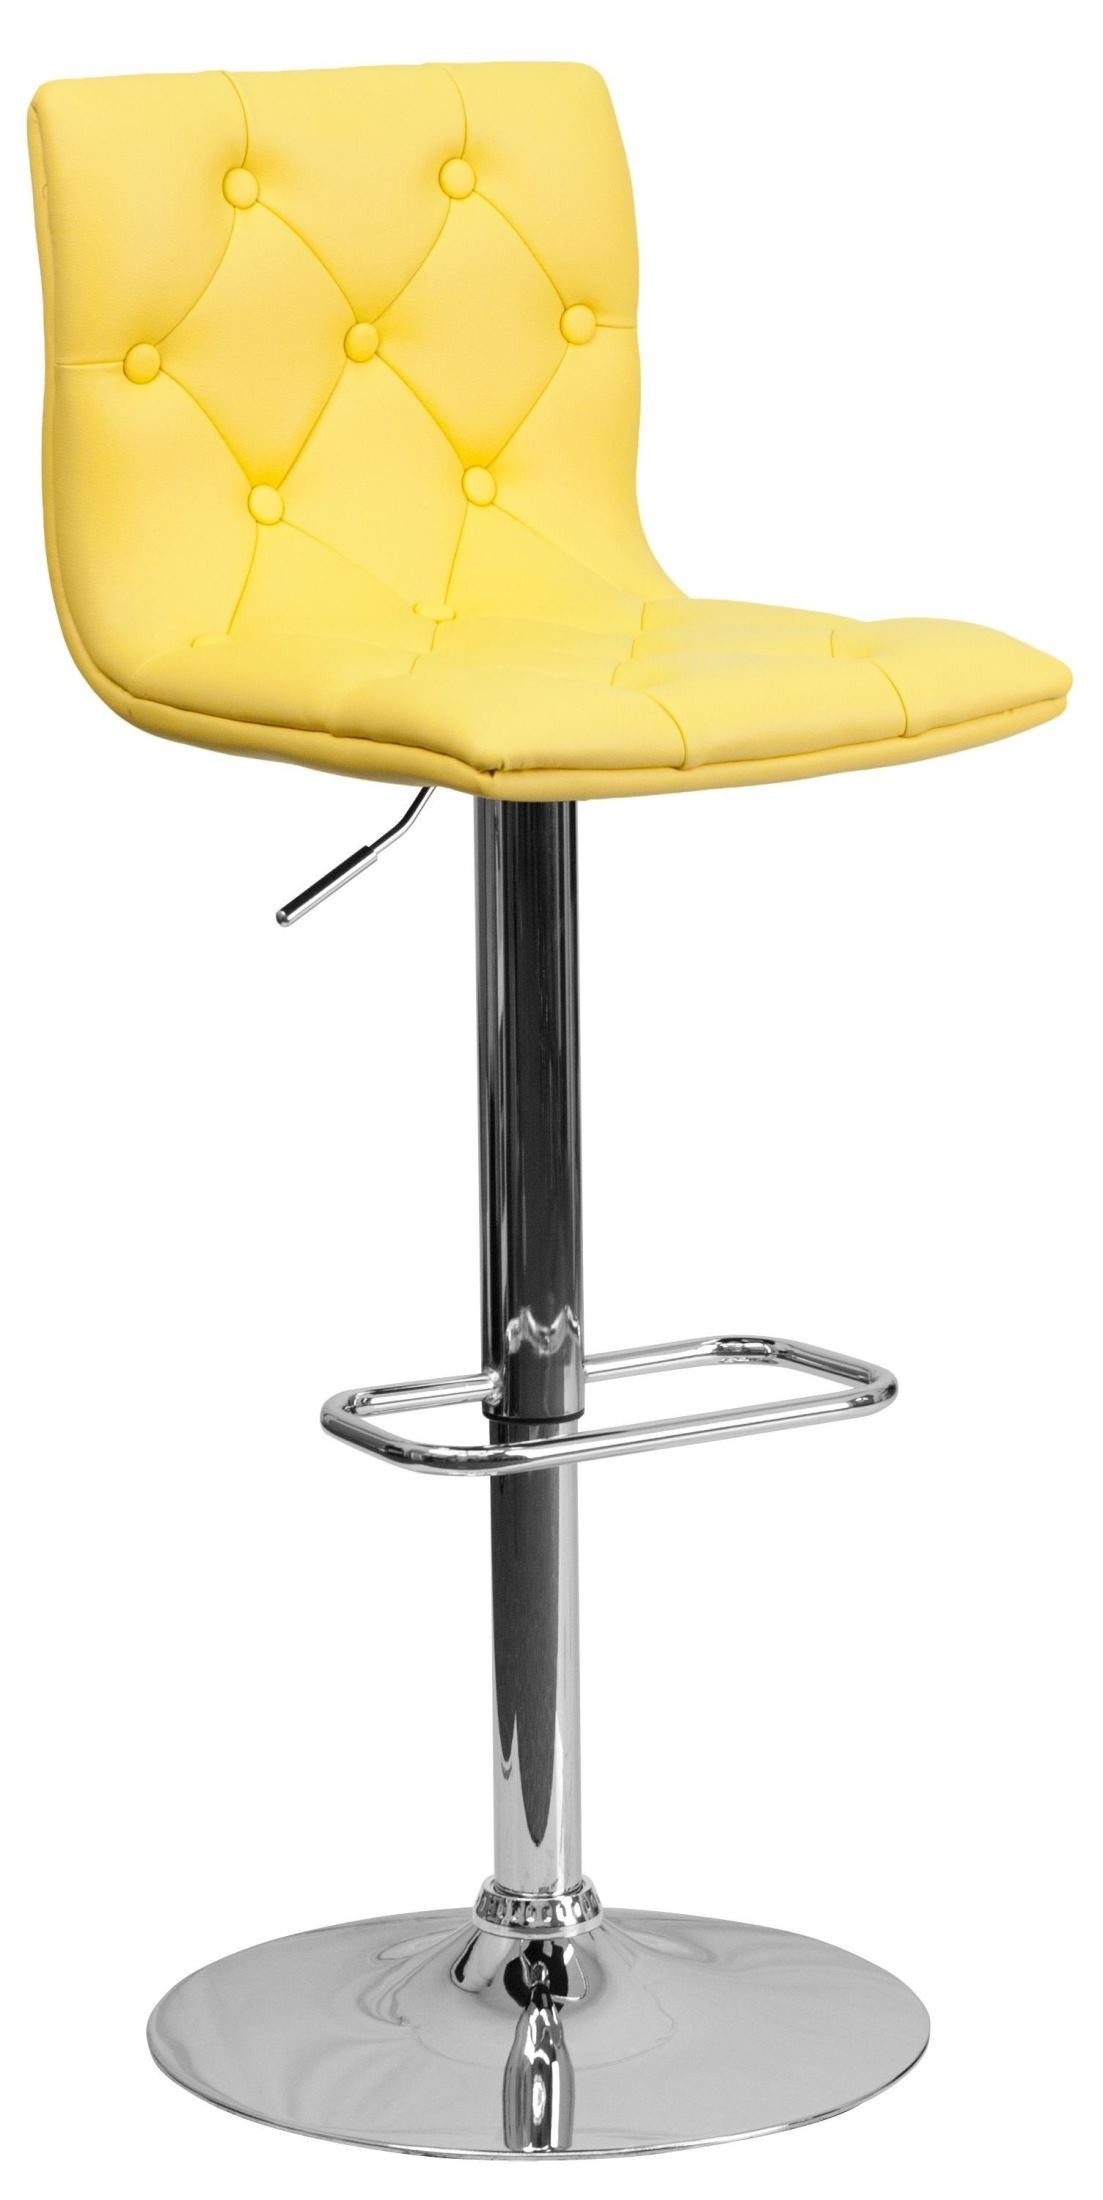 Tufted Yellow Adjustable Height Bar Stool From Renegade